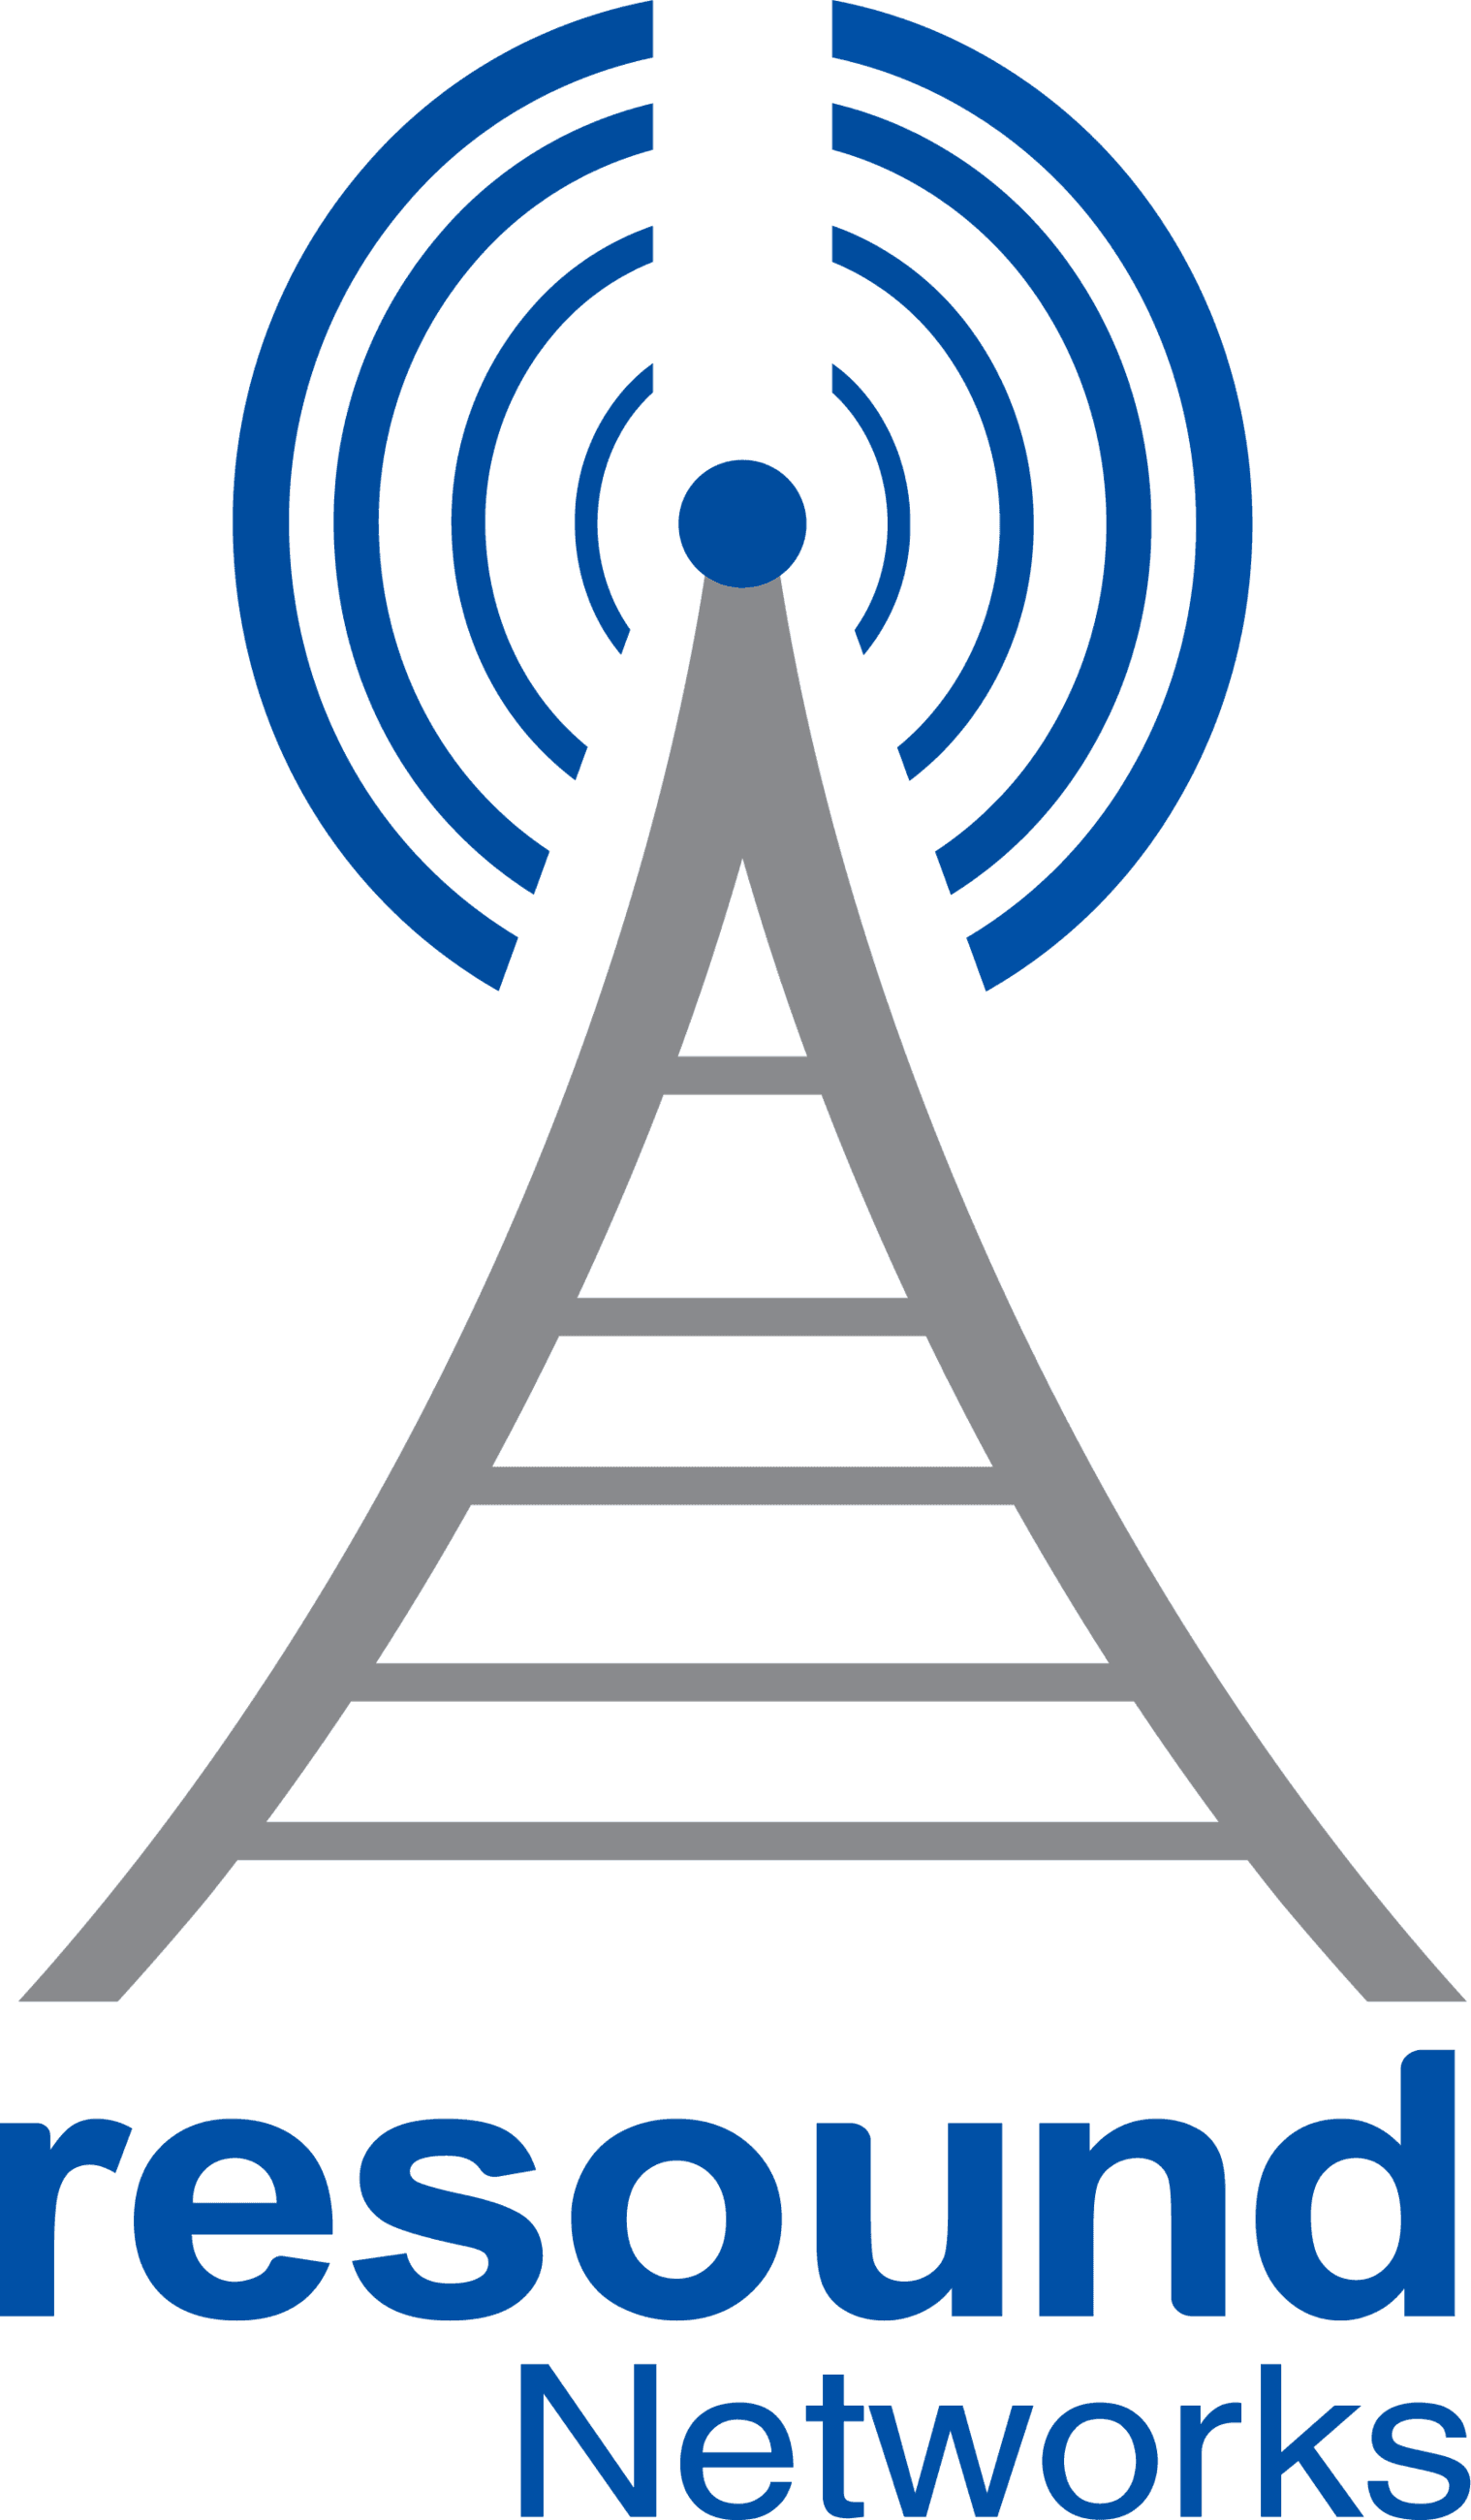 resoundnetworks